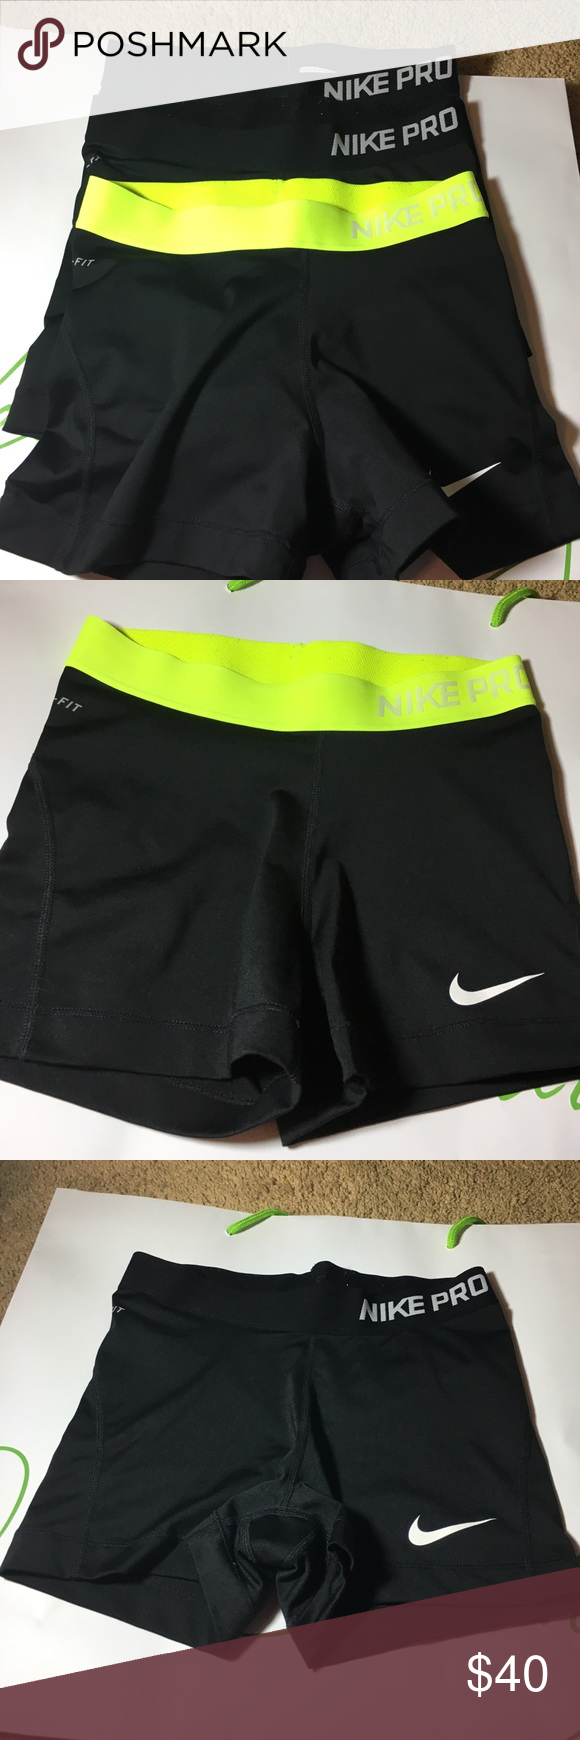 3 pairs of Nike Pro spandex! Great condition. Worn only once or twice. Nike Other